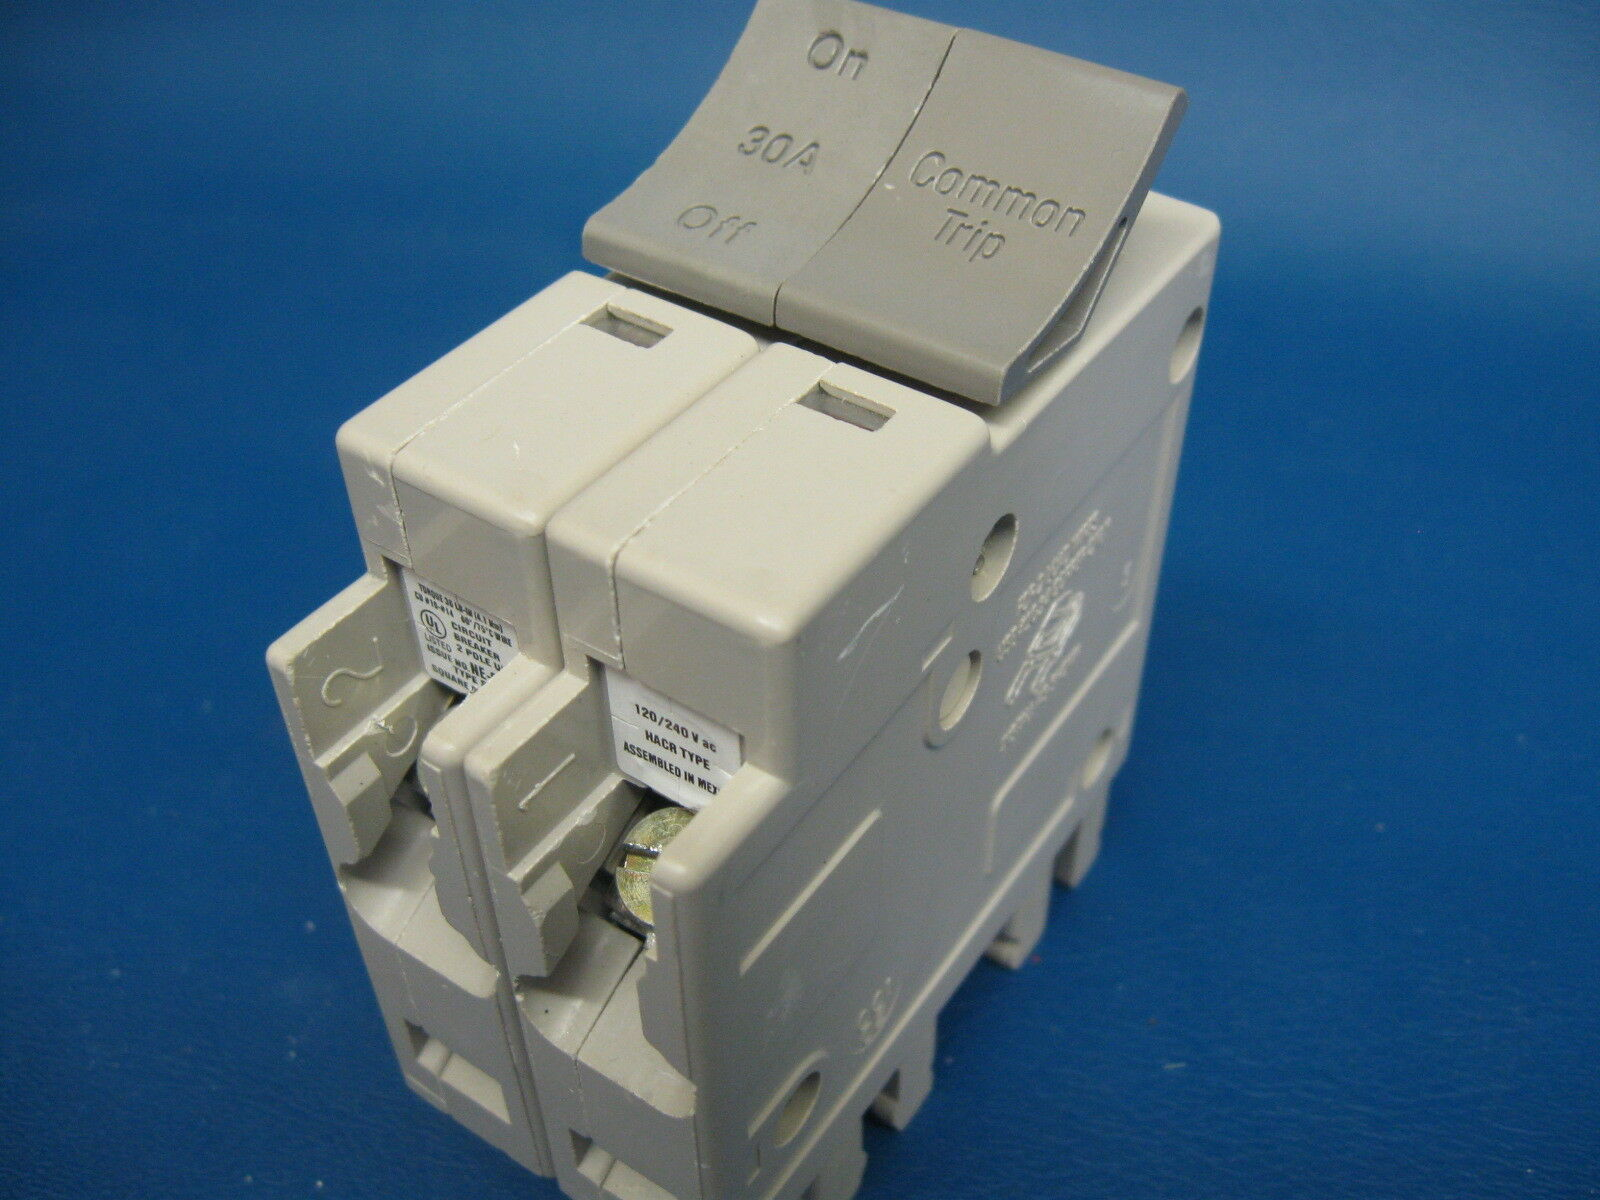 30 Amp Square D Trilliant Double Or 2 Pole Type Sdt230 Breaker 30a Used Circuit Breakers Ge Sgda32at0400 400 3 Item 6 Nice